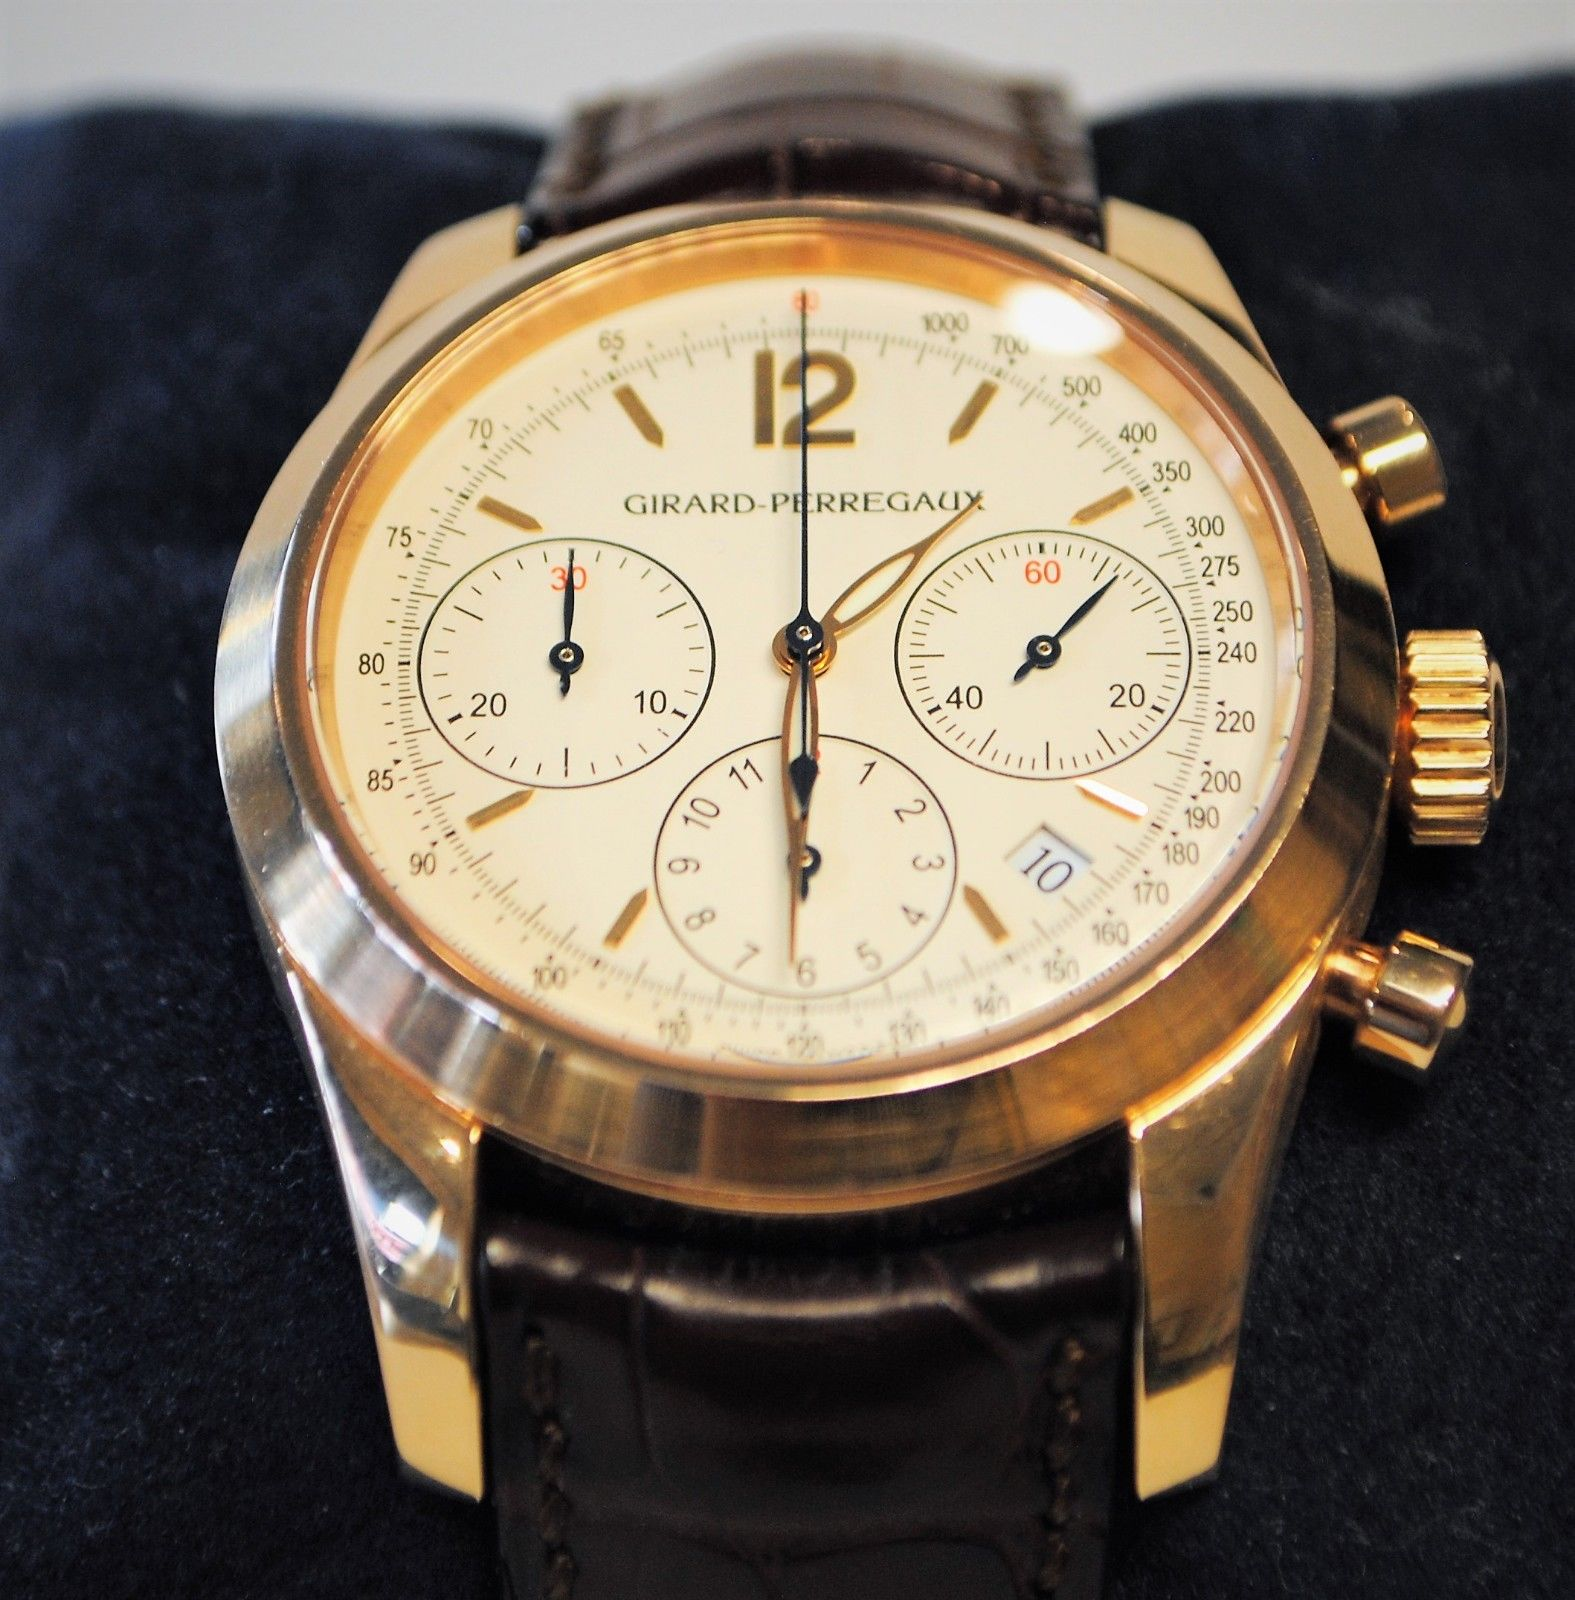 Girard Perregaux Chronograph 18k Gold 49560 Pre-Owned - Excellent